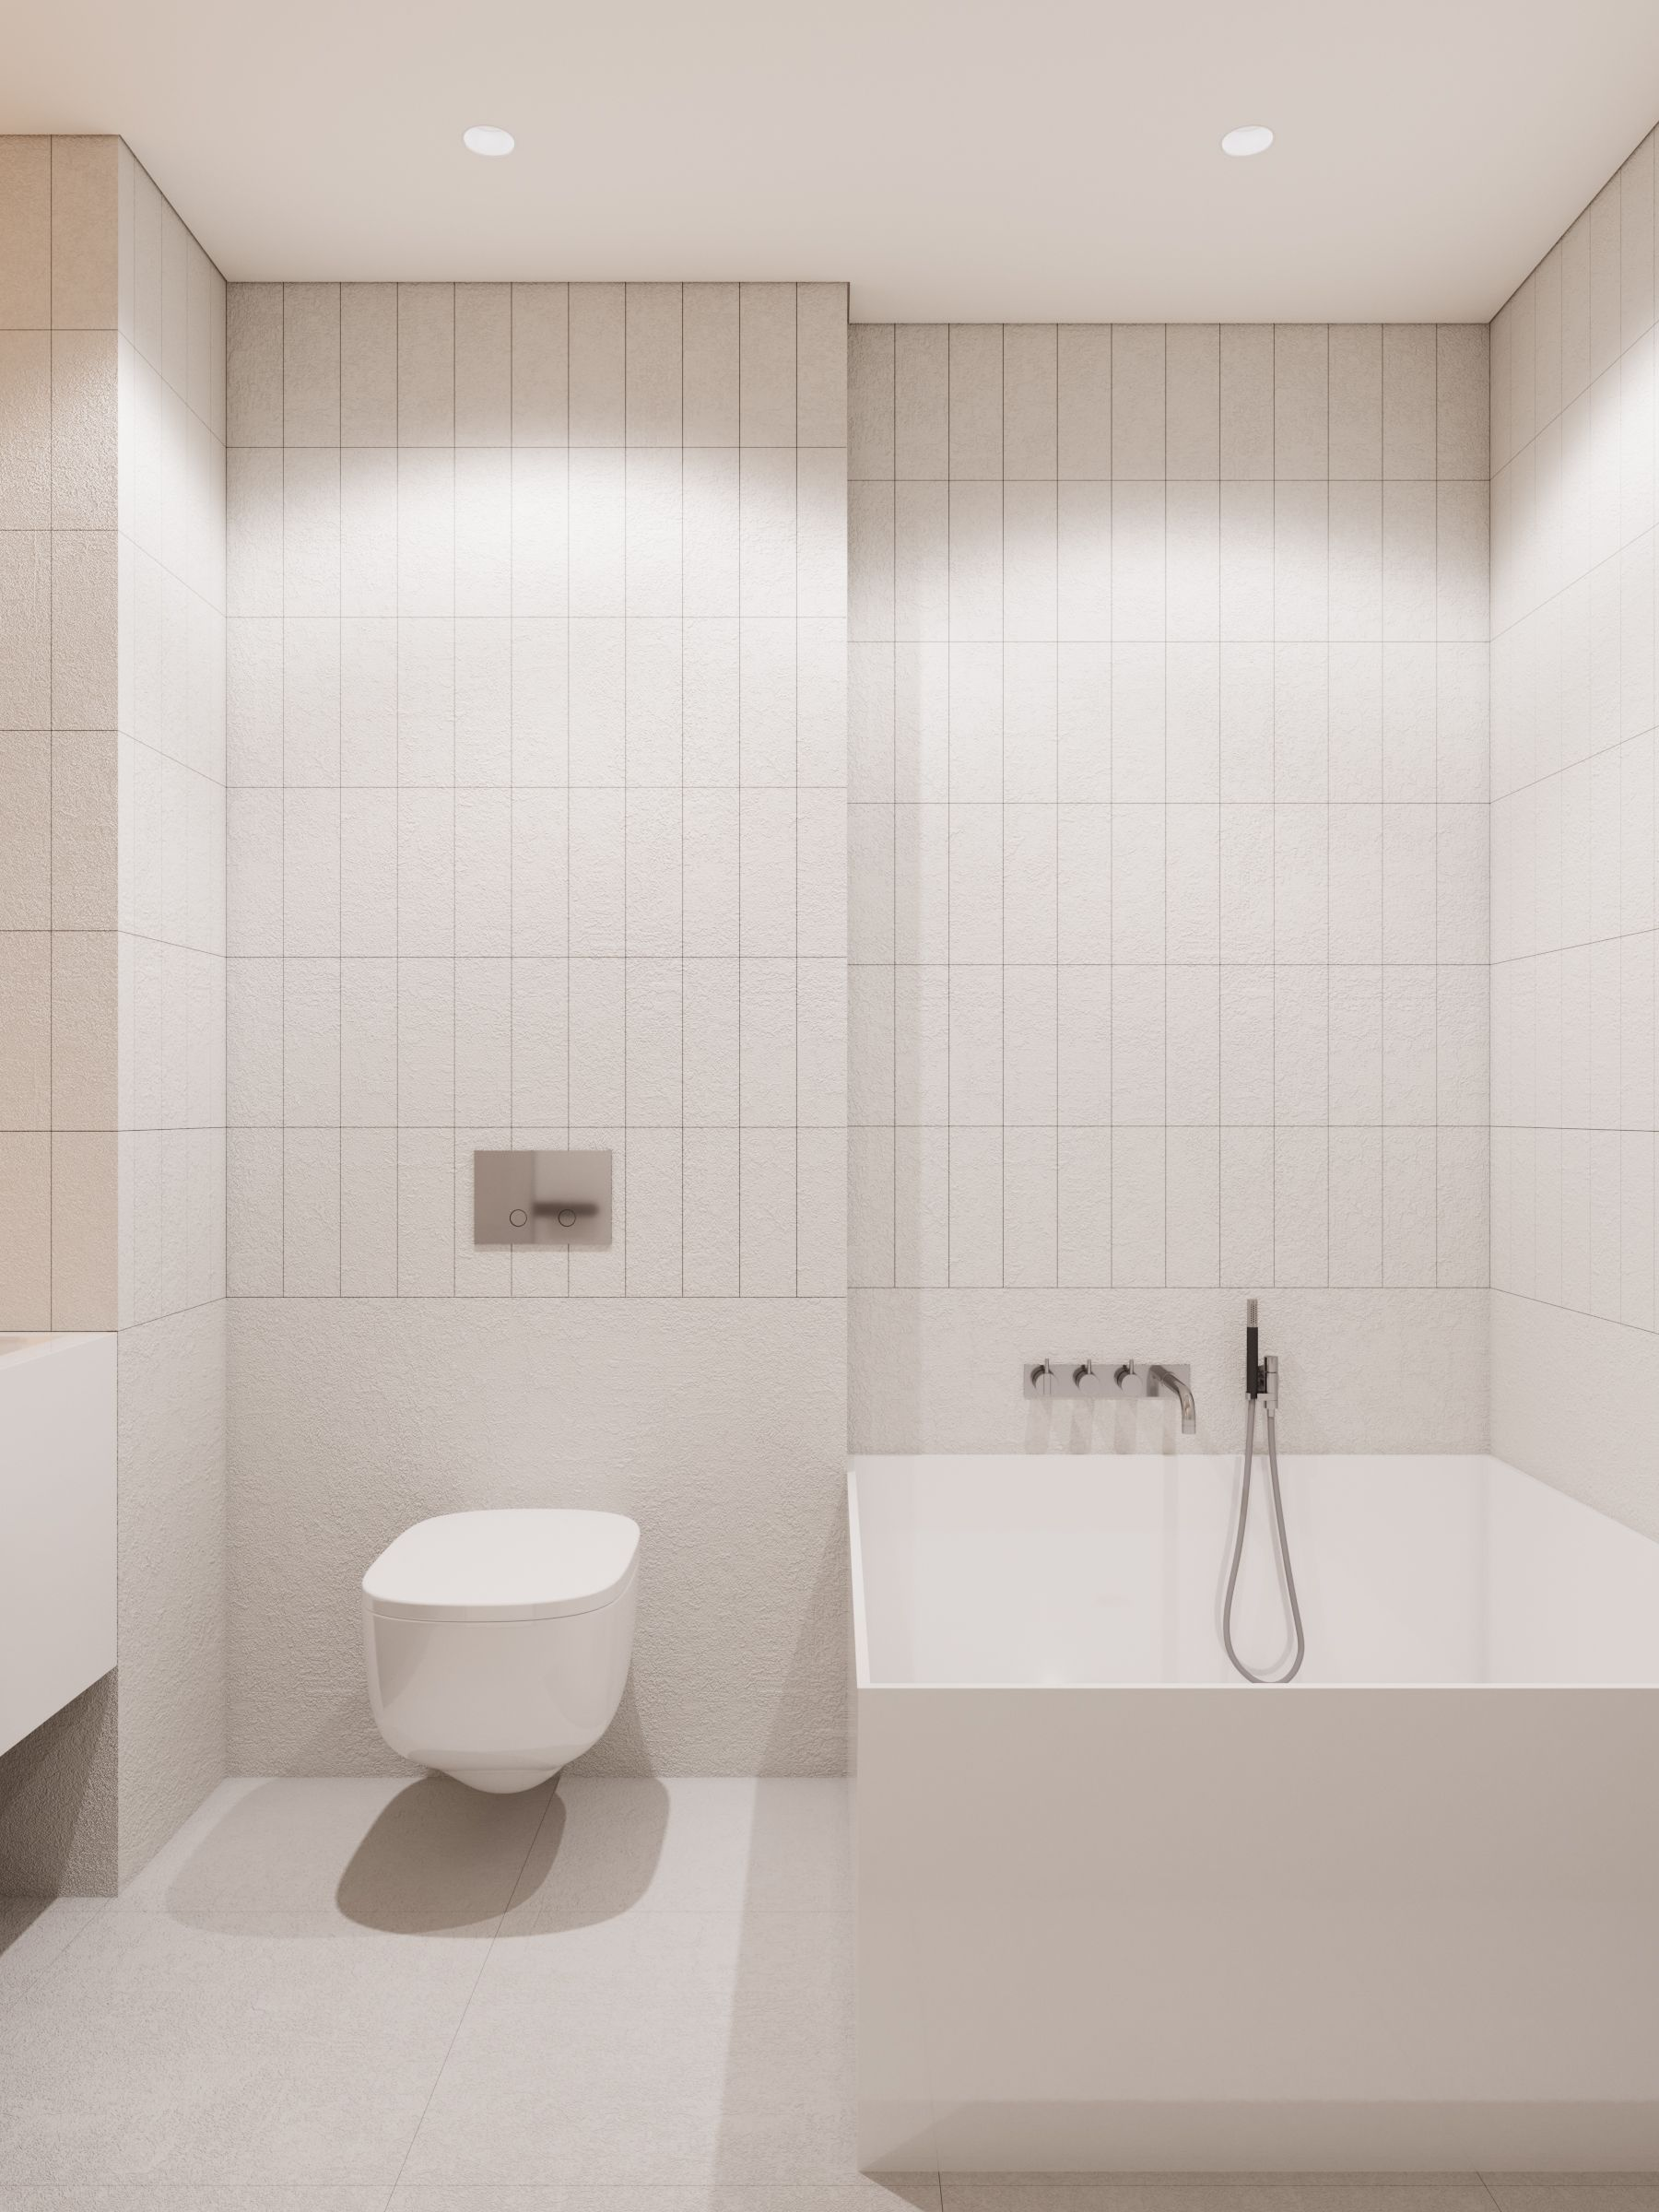 Vertical rectangular subway tile unexpected makes the ceiling vertical rectangular subway tile unexpected makes the ceiling feel higher dailygadgetfo Image collections